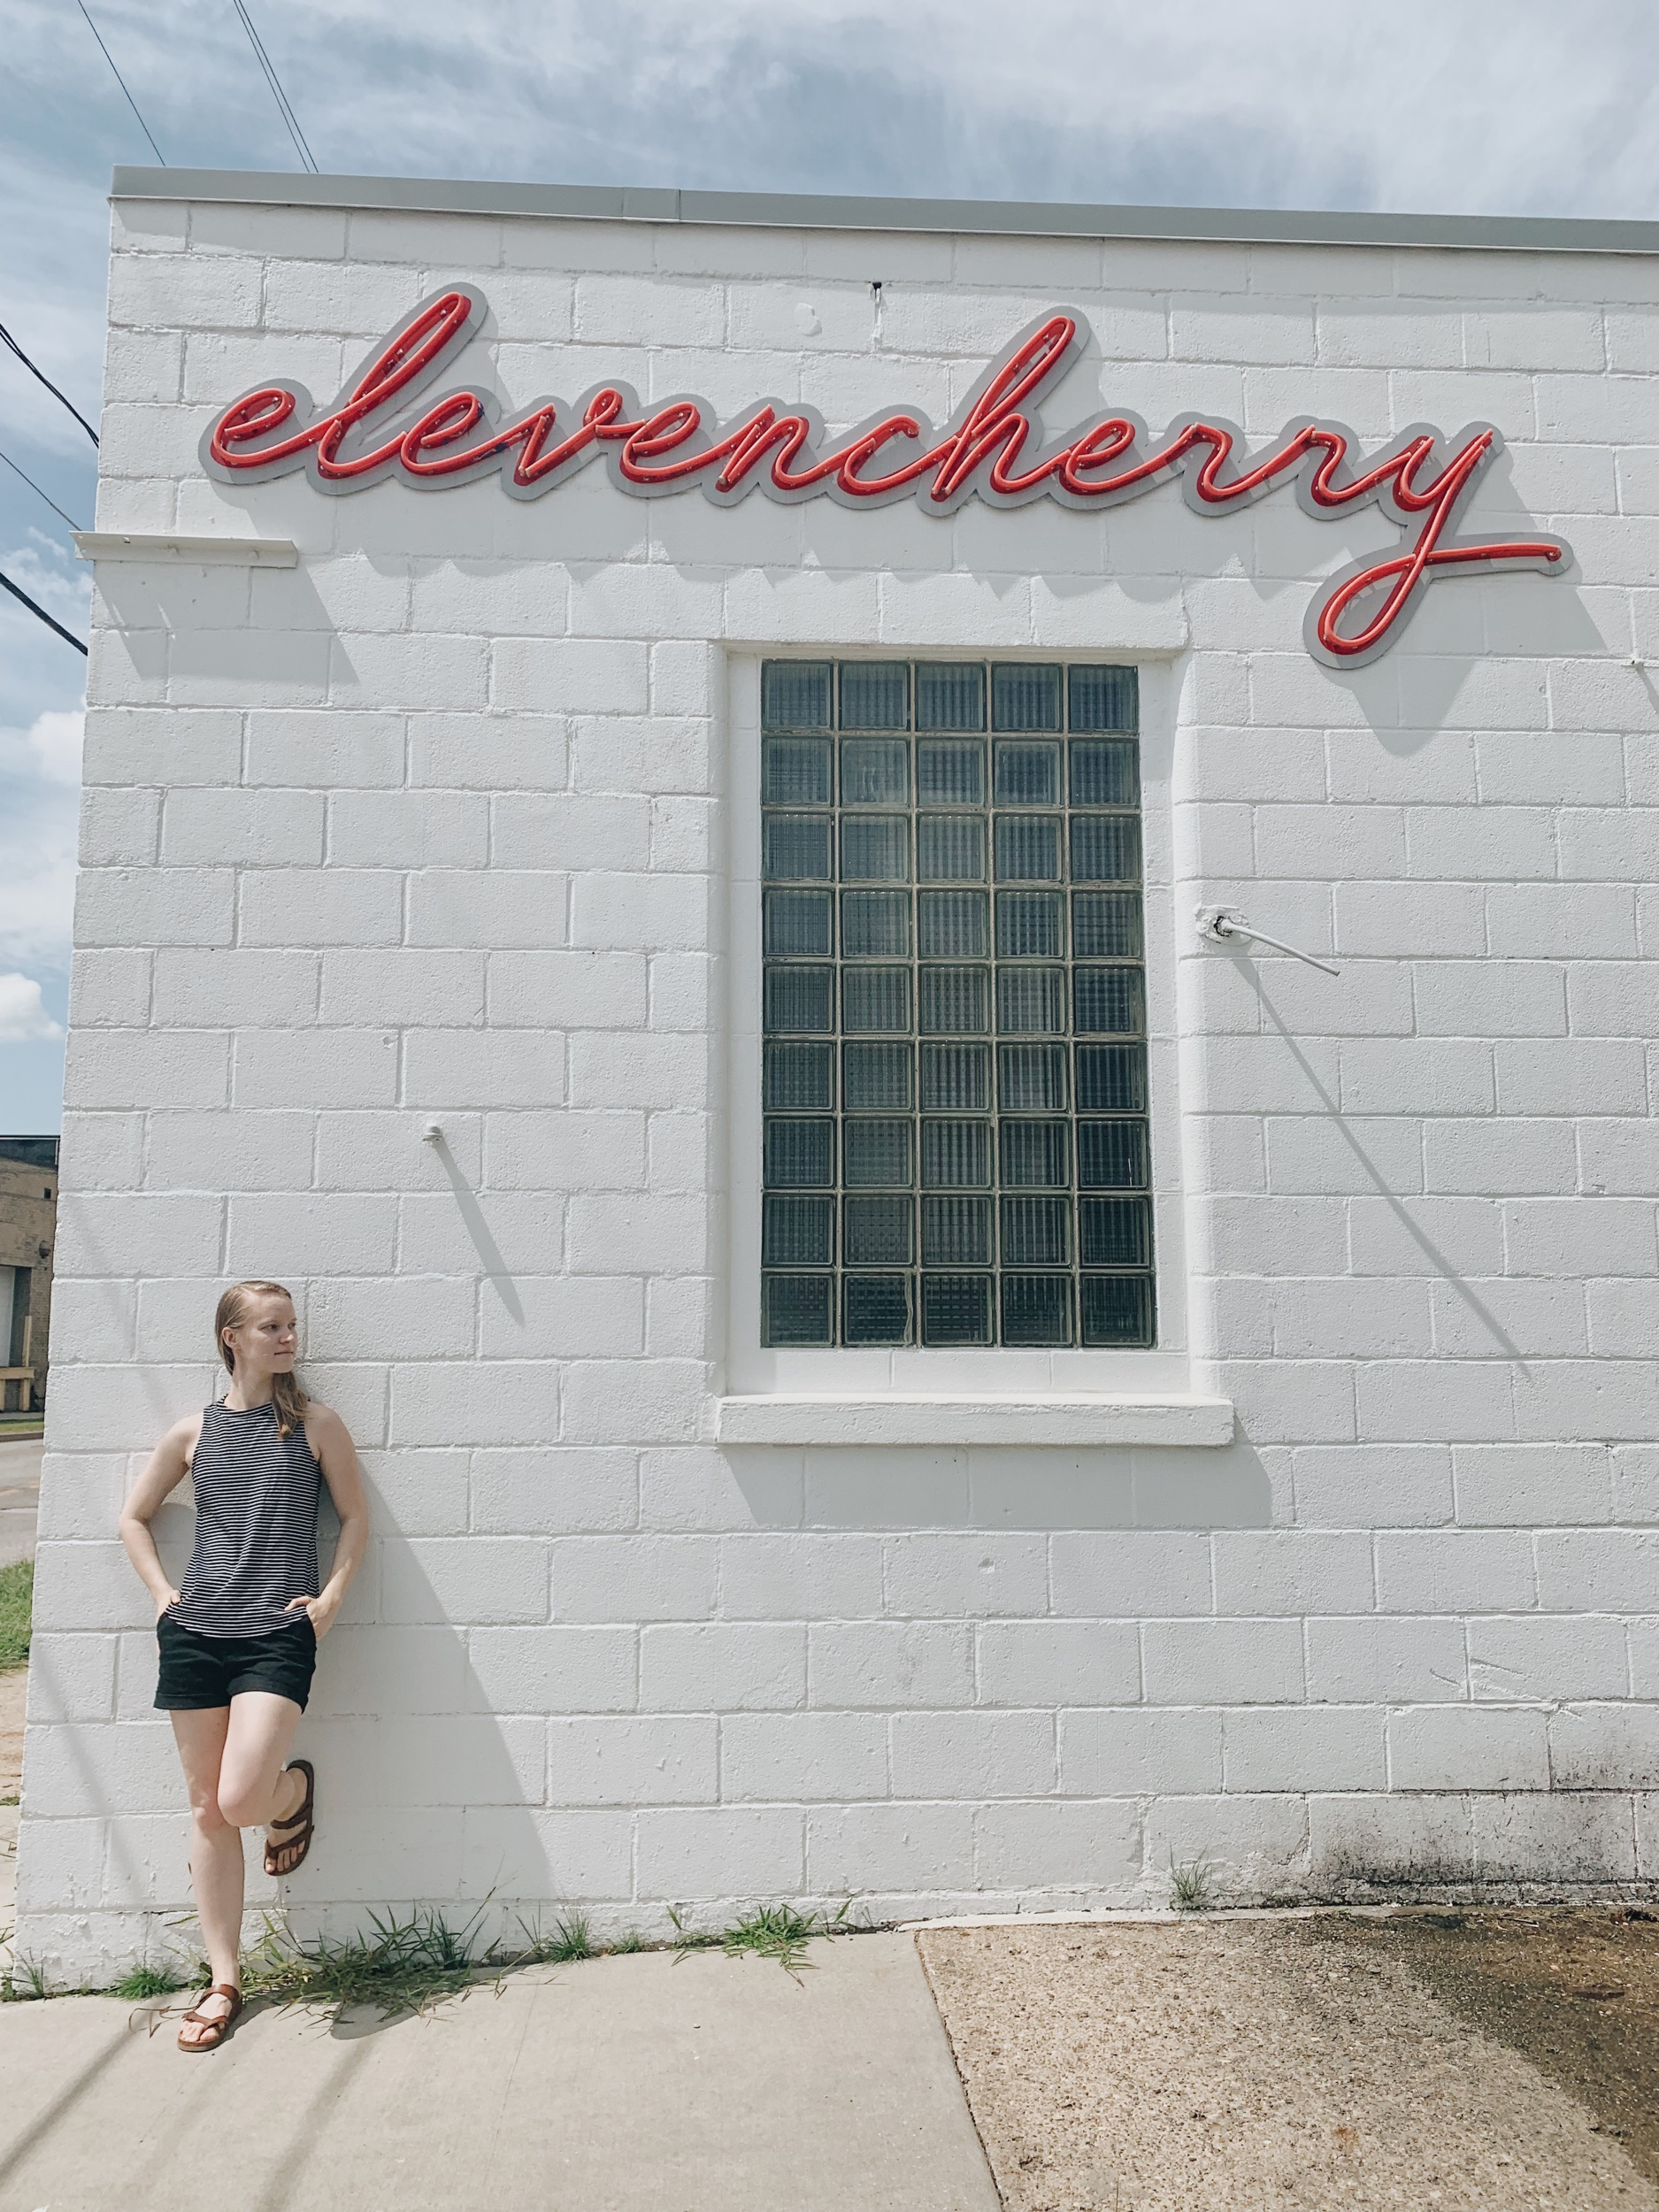 elevencherry sign in des moines iowa